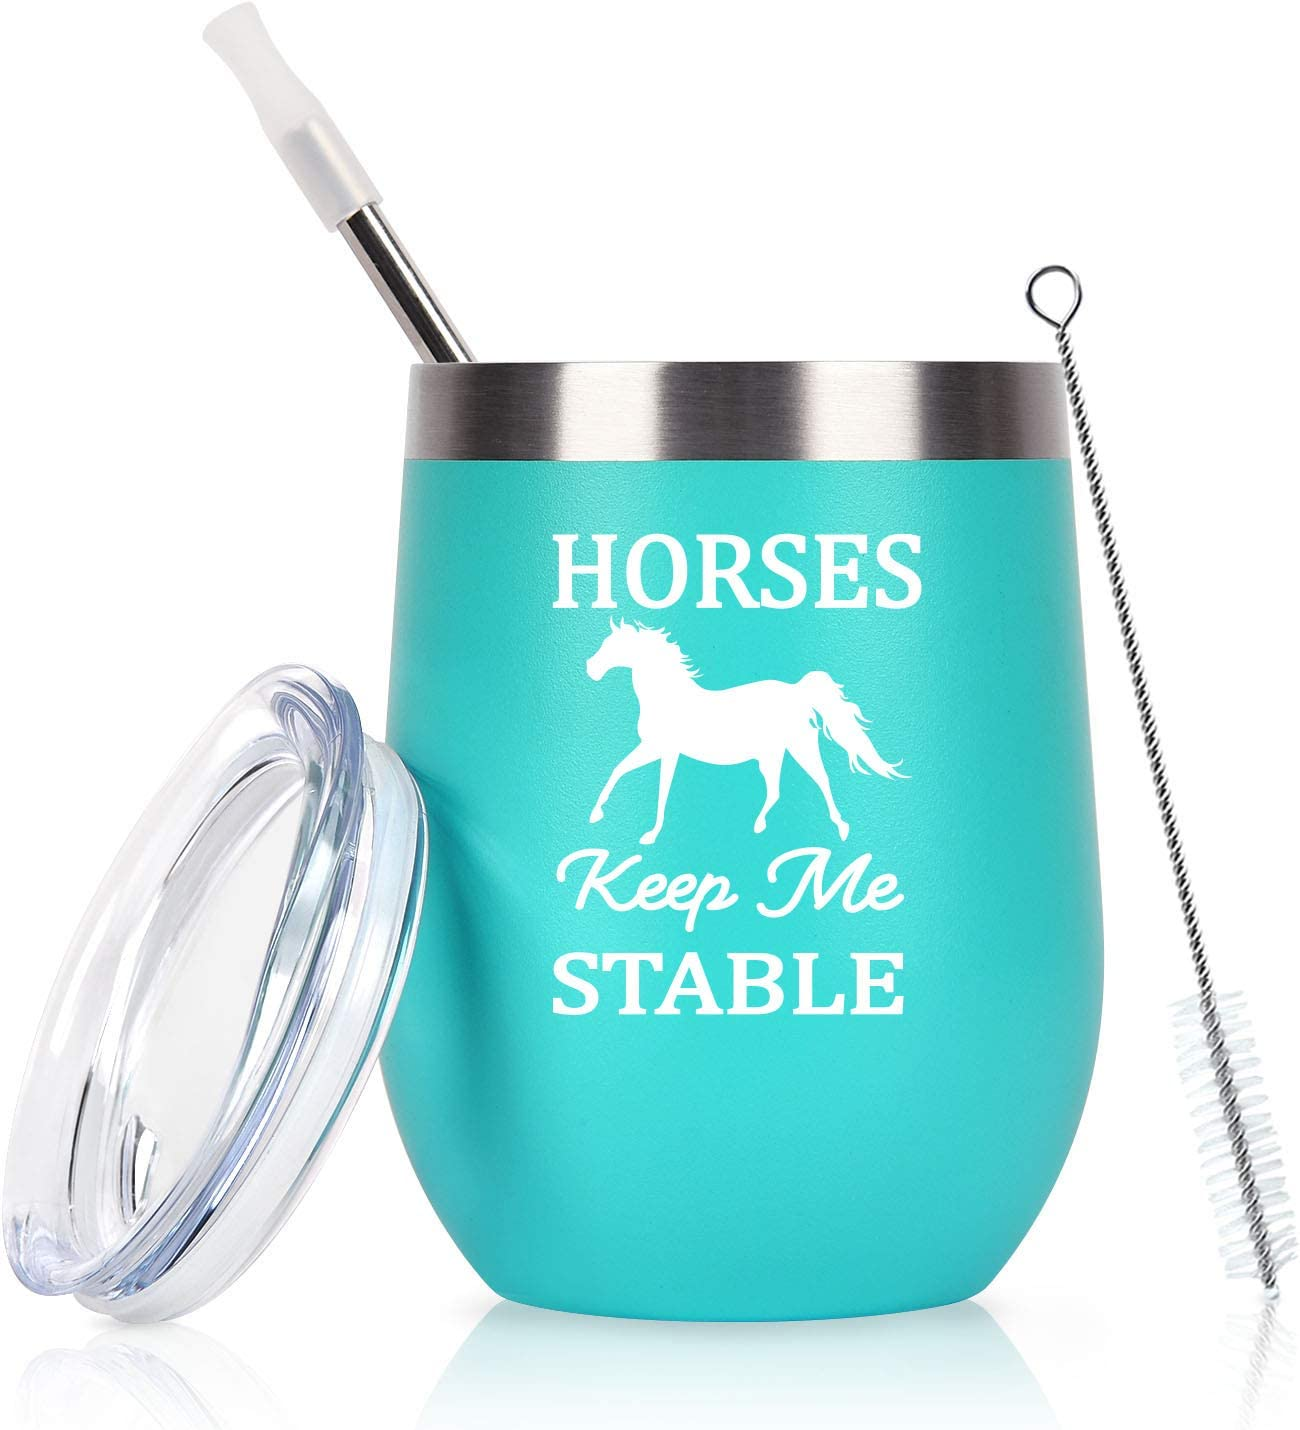 Horse Gifts For Women, Horses Keep Me Stable Wine Tumbler with Lid, Funny Birthday Christmas Gifts for Horse Lovers, Girls, Mom, Friends, Aunt, Sister, 12 Oz Insulated Stainless Steel Tumbler, Mint